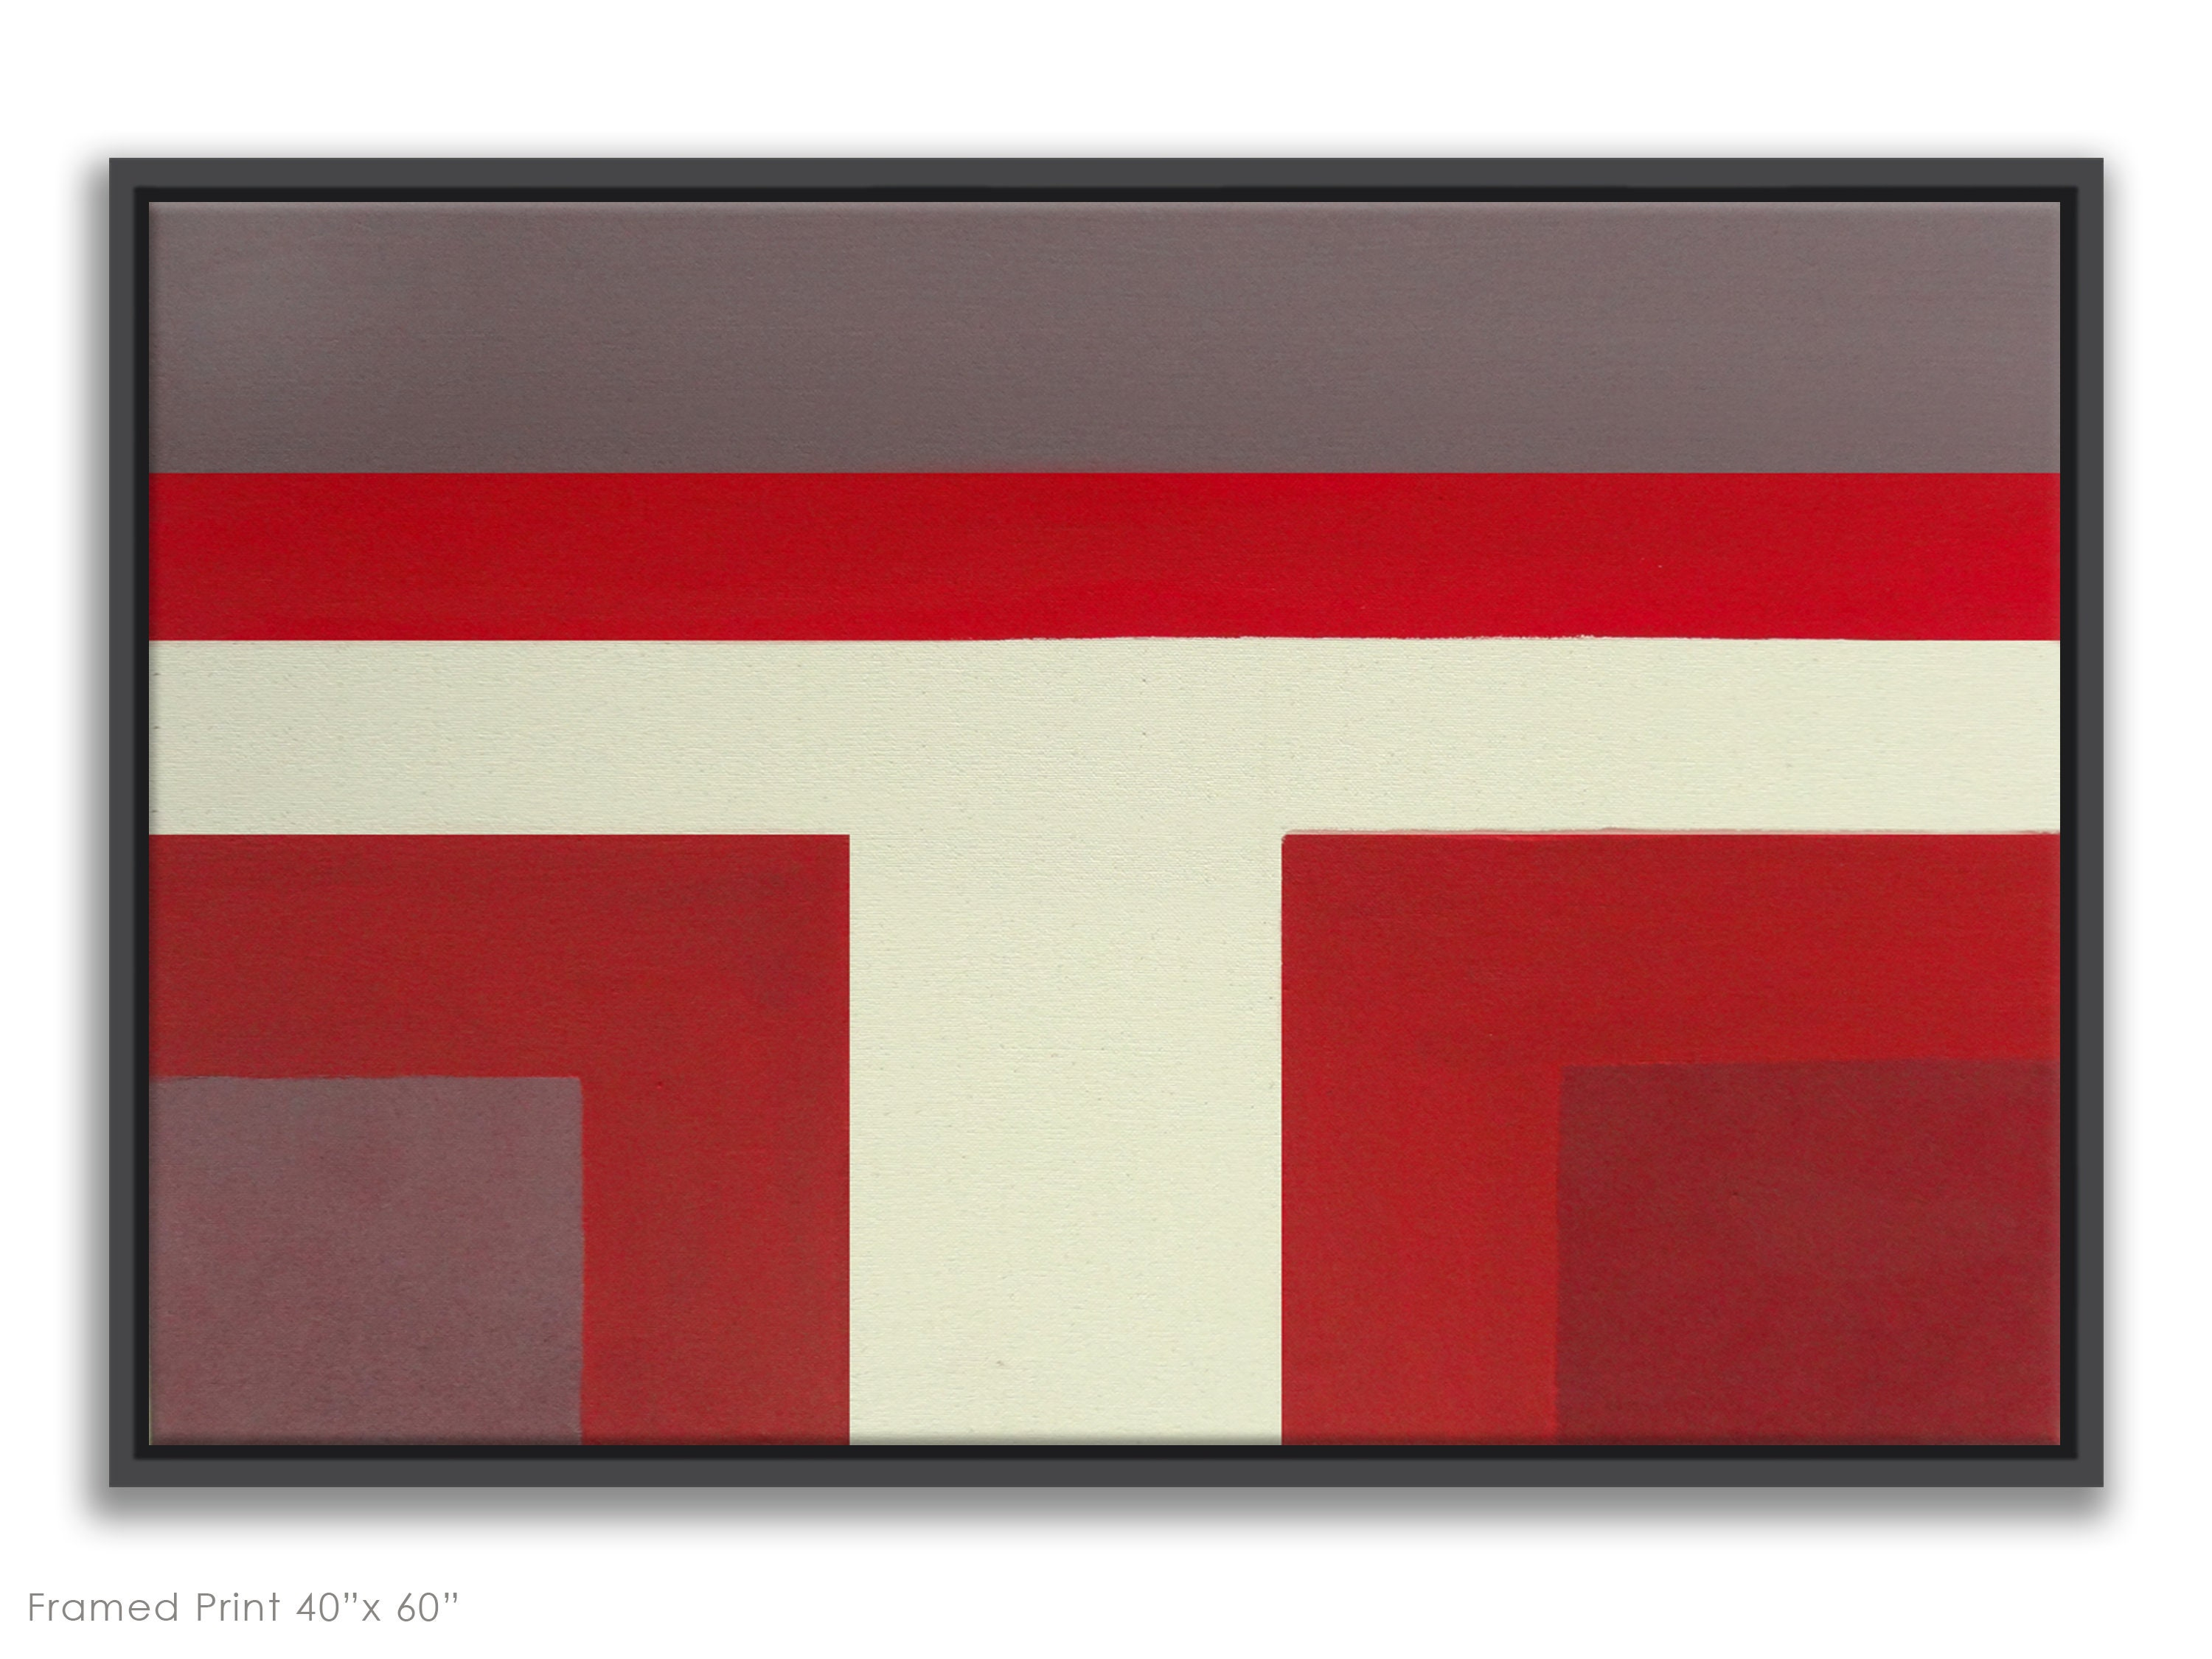 Red Modern Abstract Color Block Painting Burgundy Maroon White